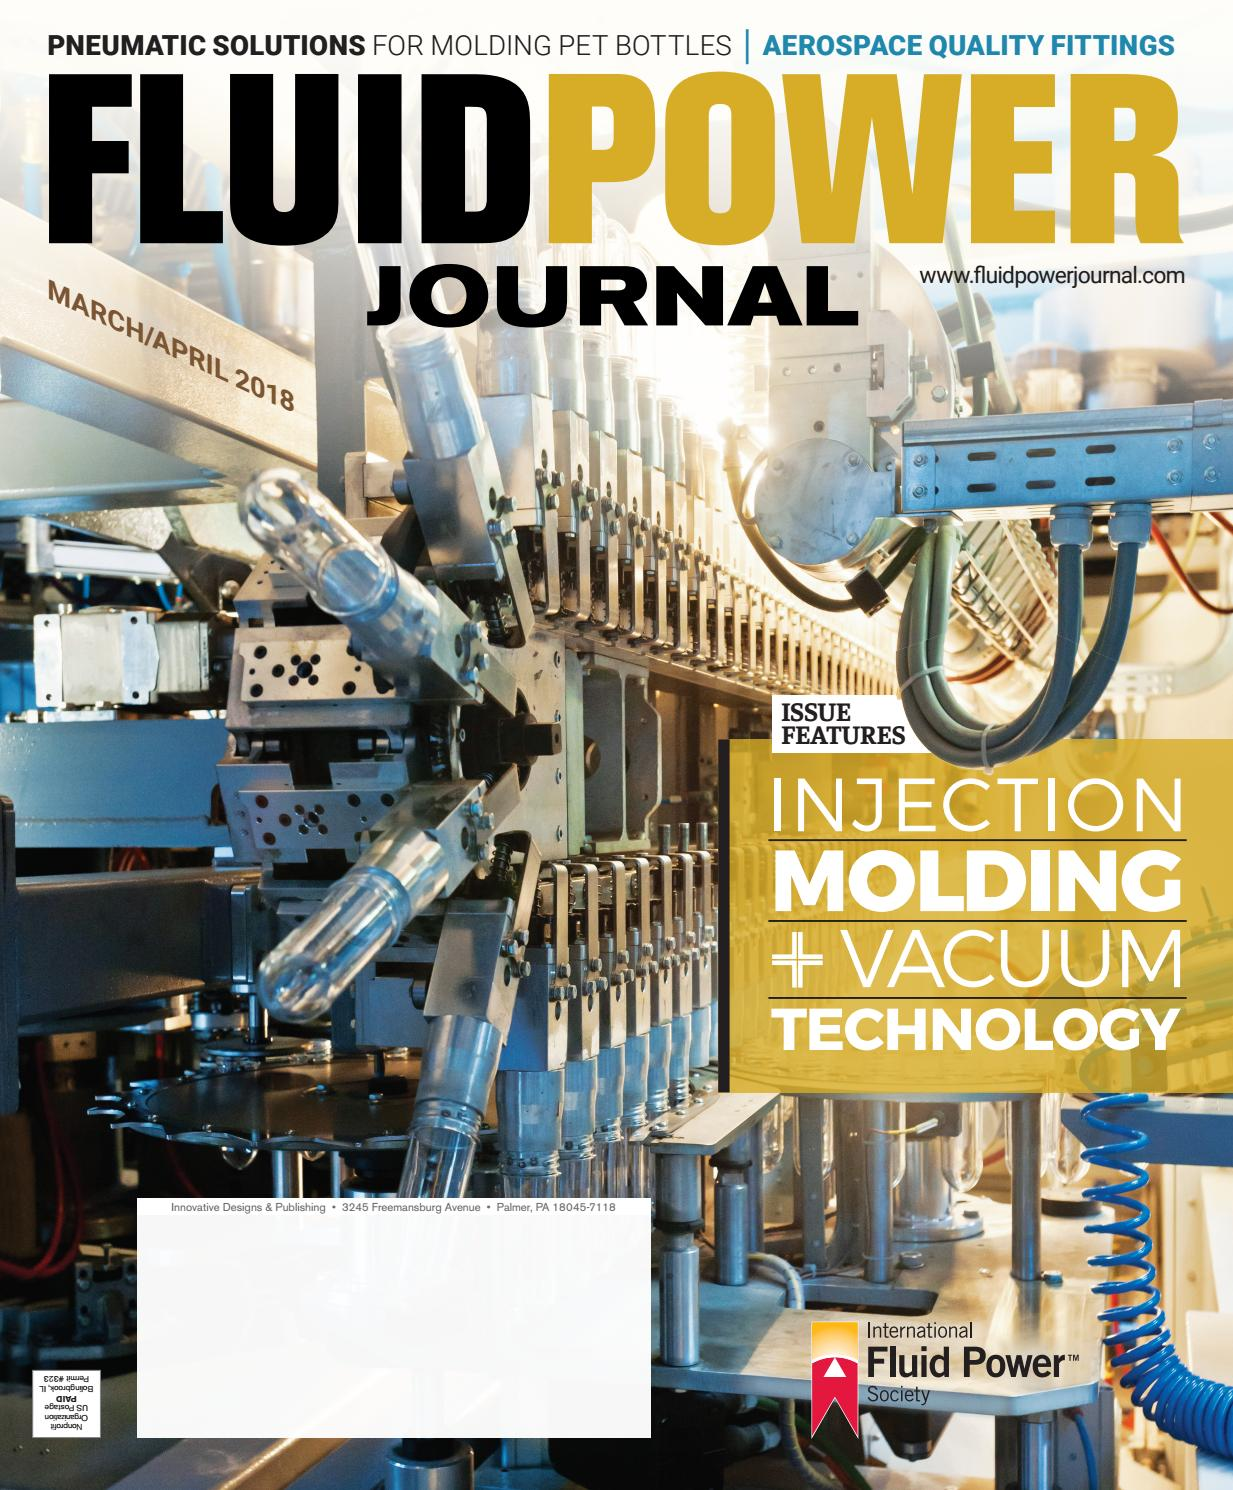 Fluid Power Journal March/April 2018 by Innovative Designs